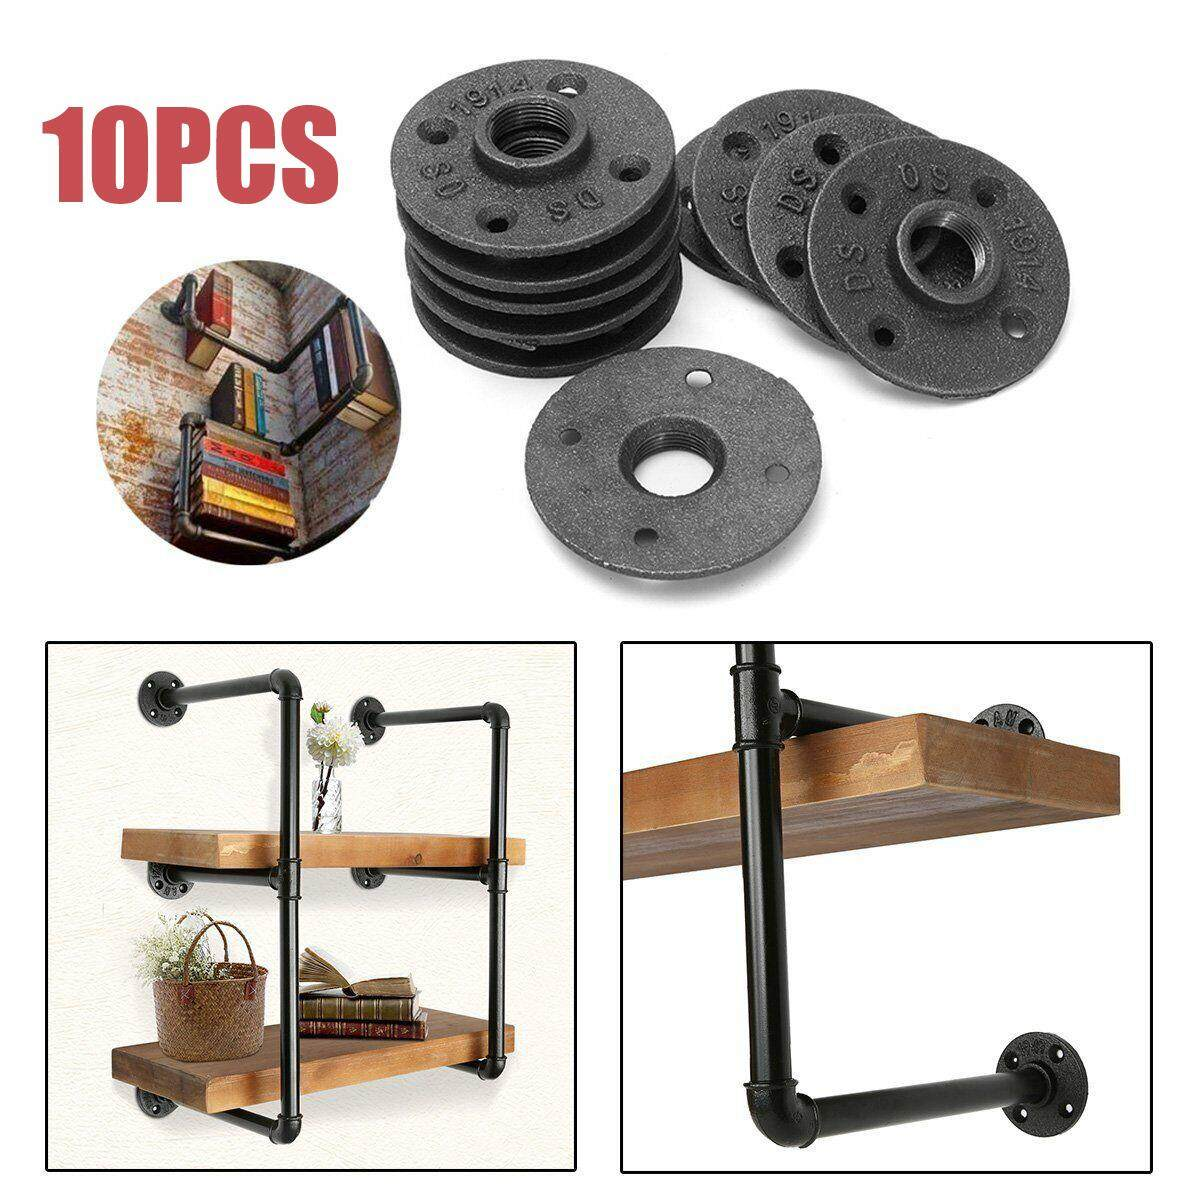 10 Pcs 1/2 Malleable Threaded Floor Flange Iron Pipe Fittings Wall Mount Floor Antique Retro style Hardware Tool Iron casting Flanges